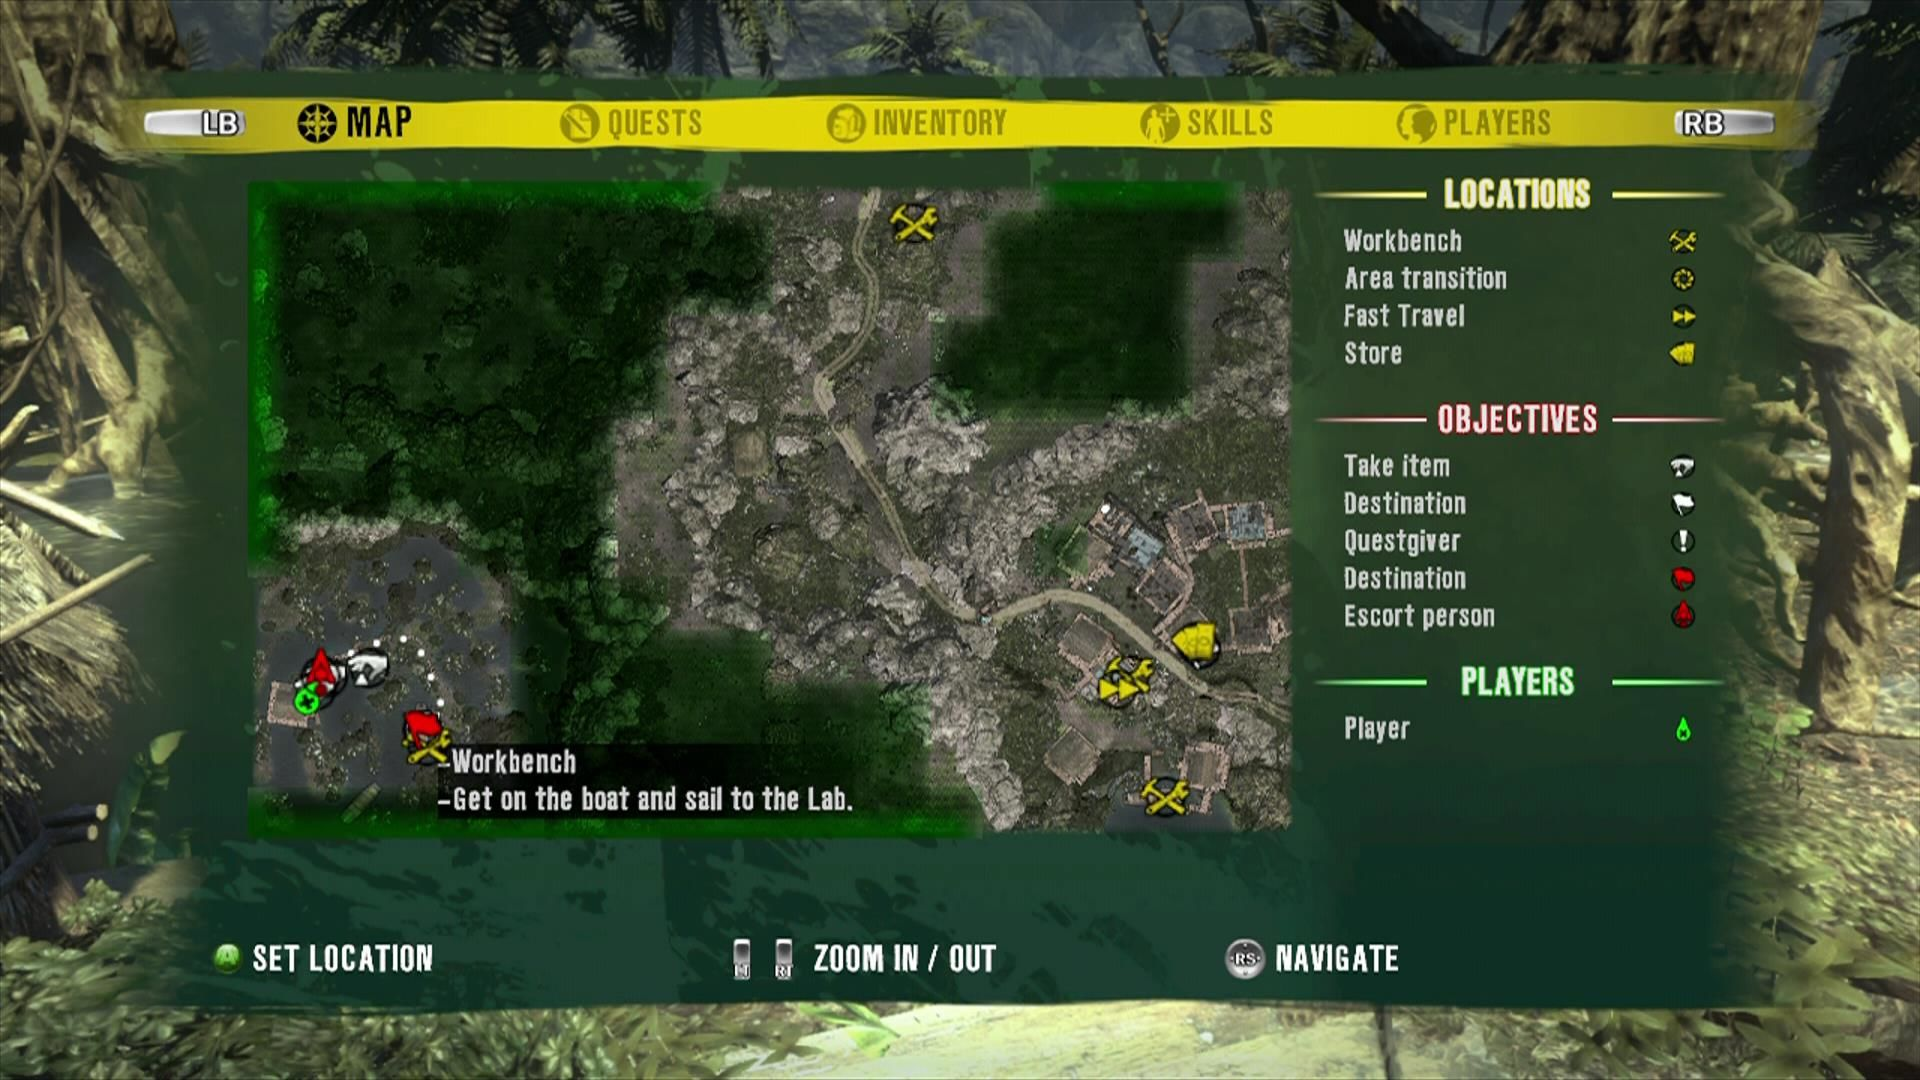 Dead Island Xbox 360 Map with points of interest and some basic route information